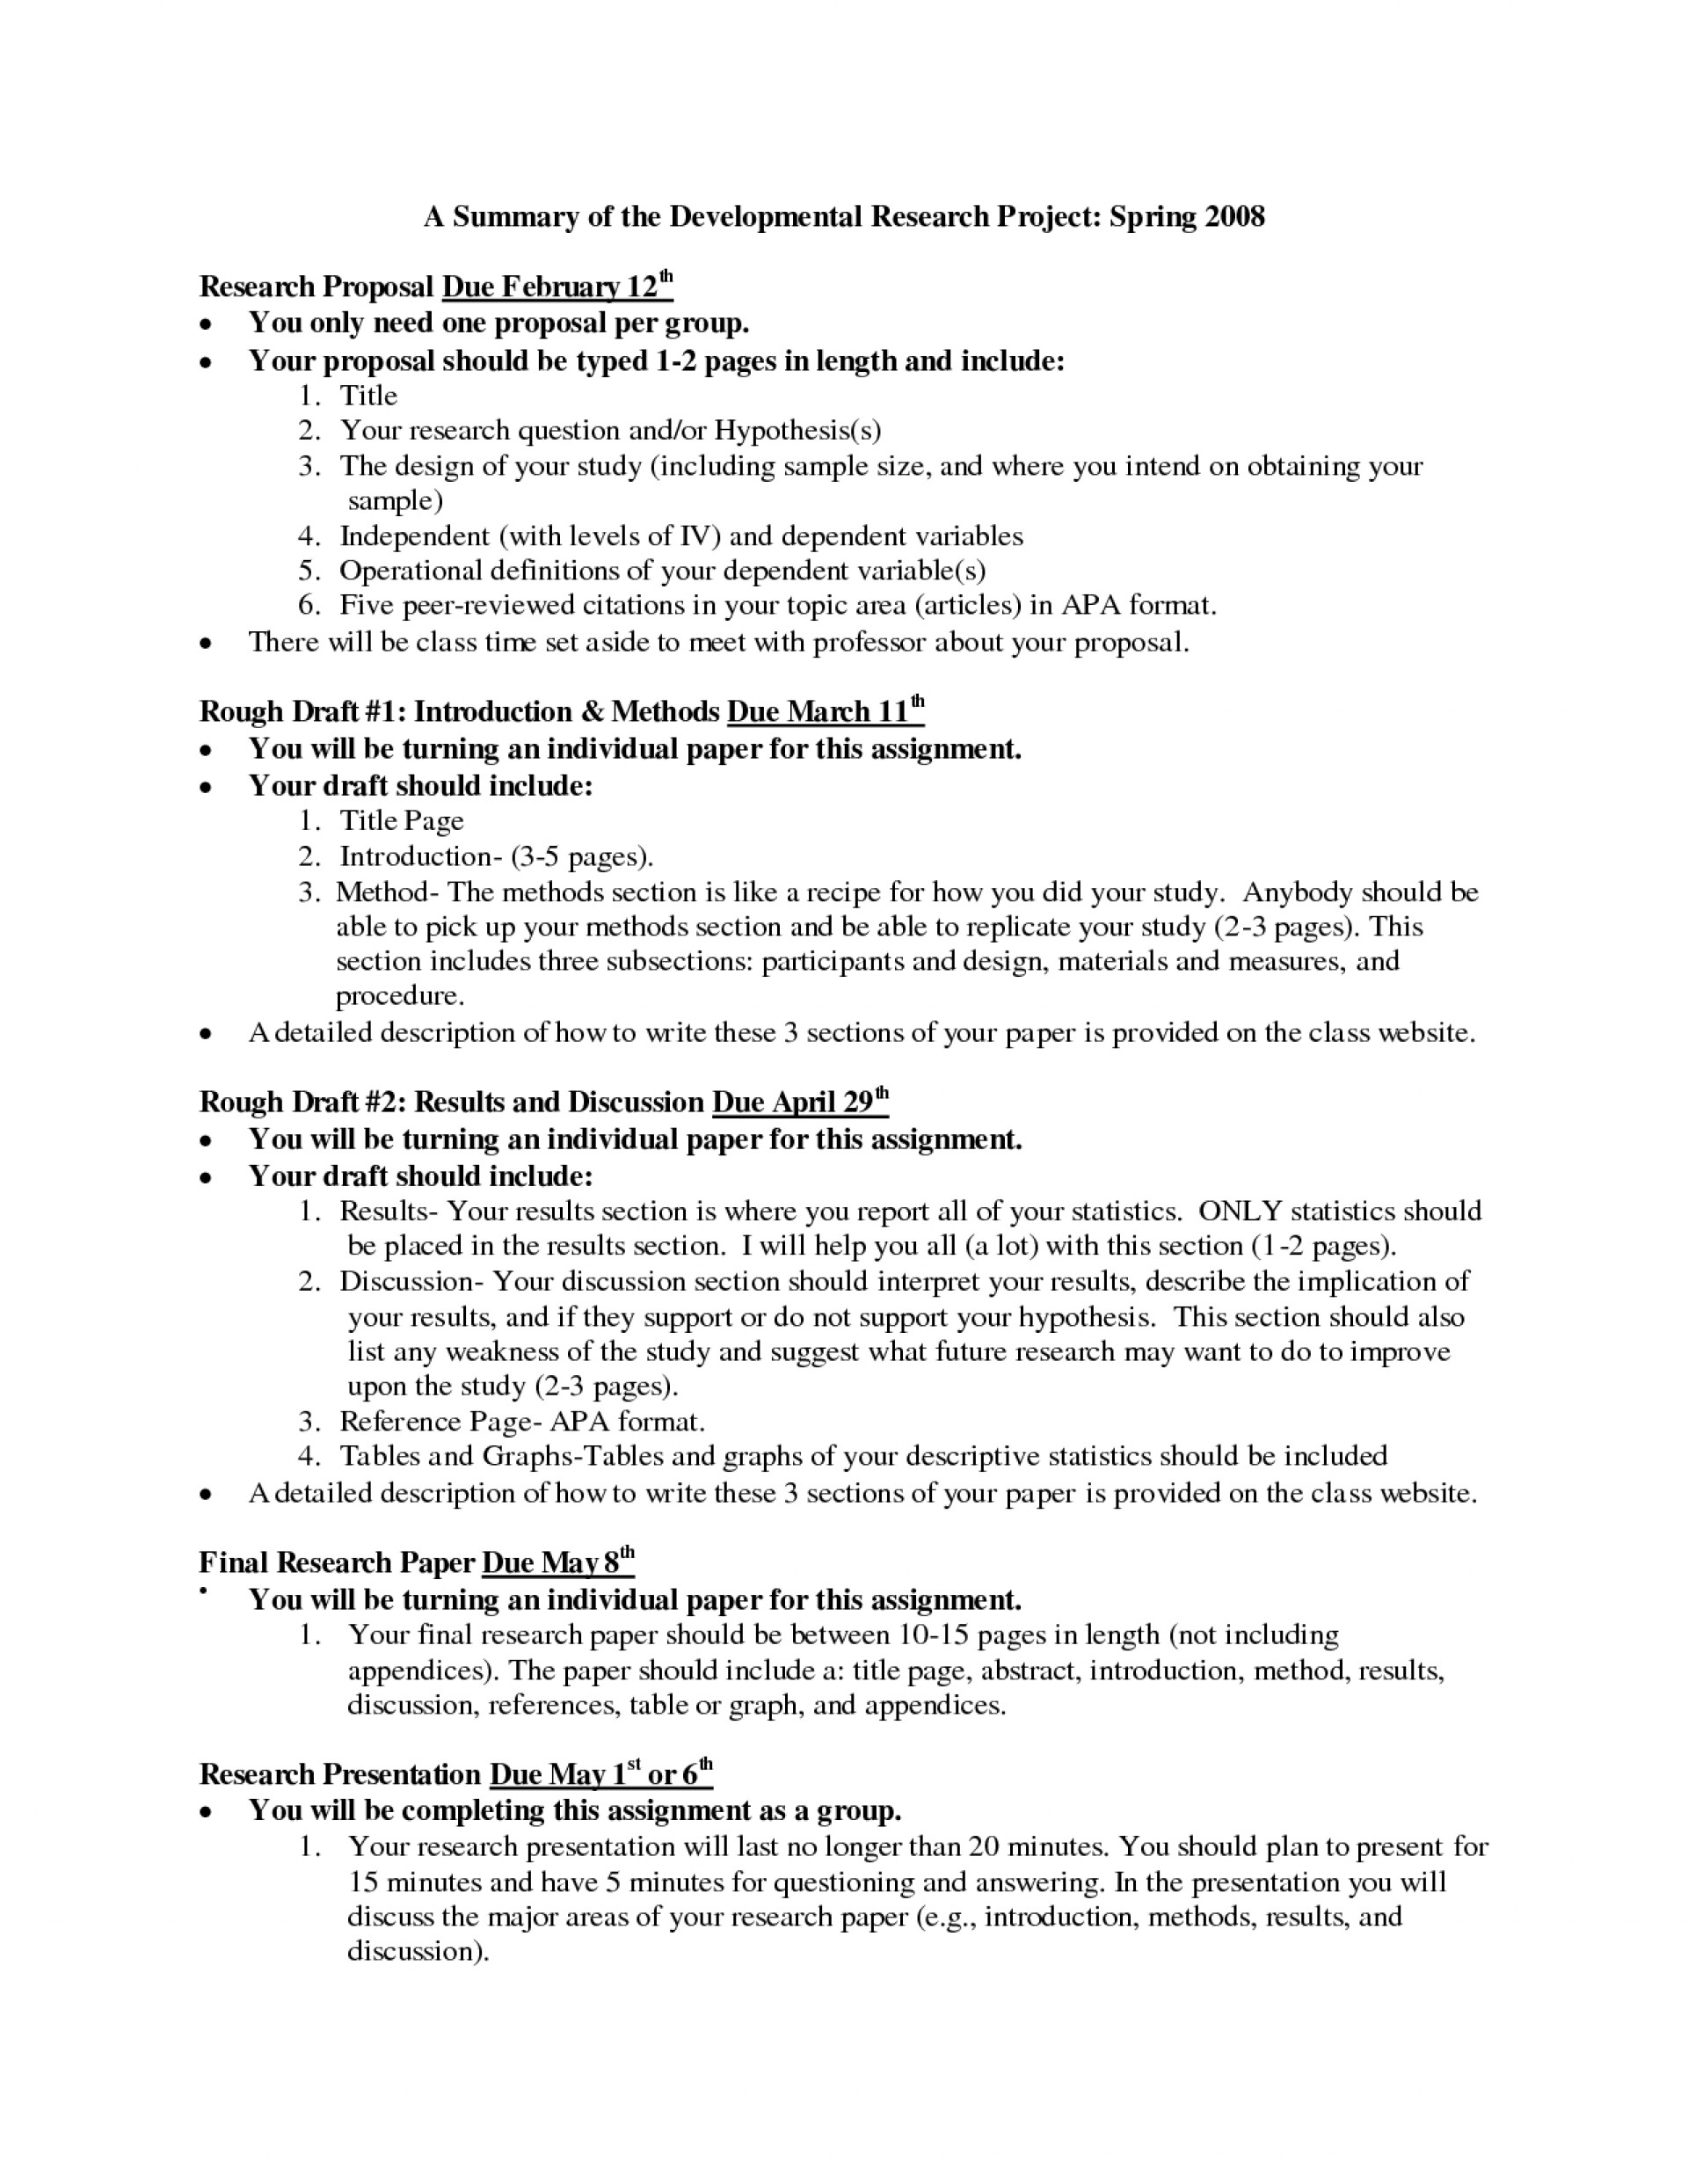 007 Topics To Write Researchs On Psychology Undergraduate Resume Unique Sample Of Magnificent Research Papers Good An Argumentative Paper Your A History 1920